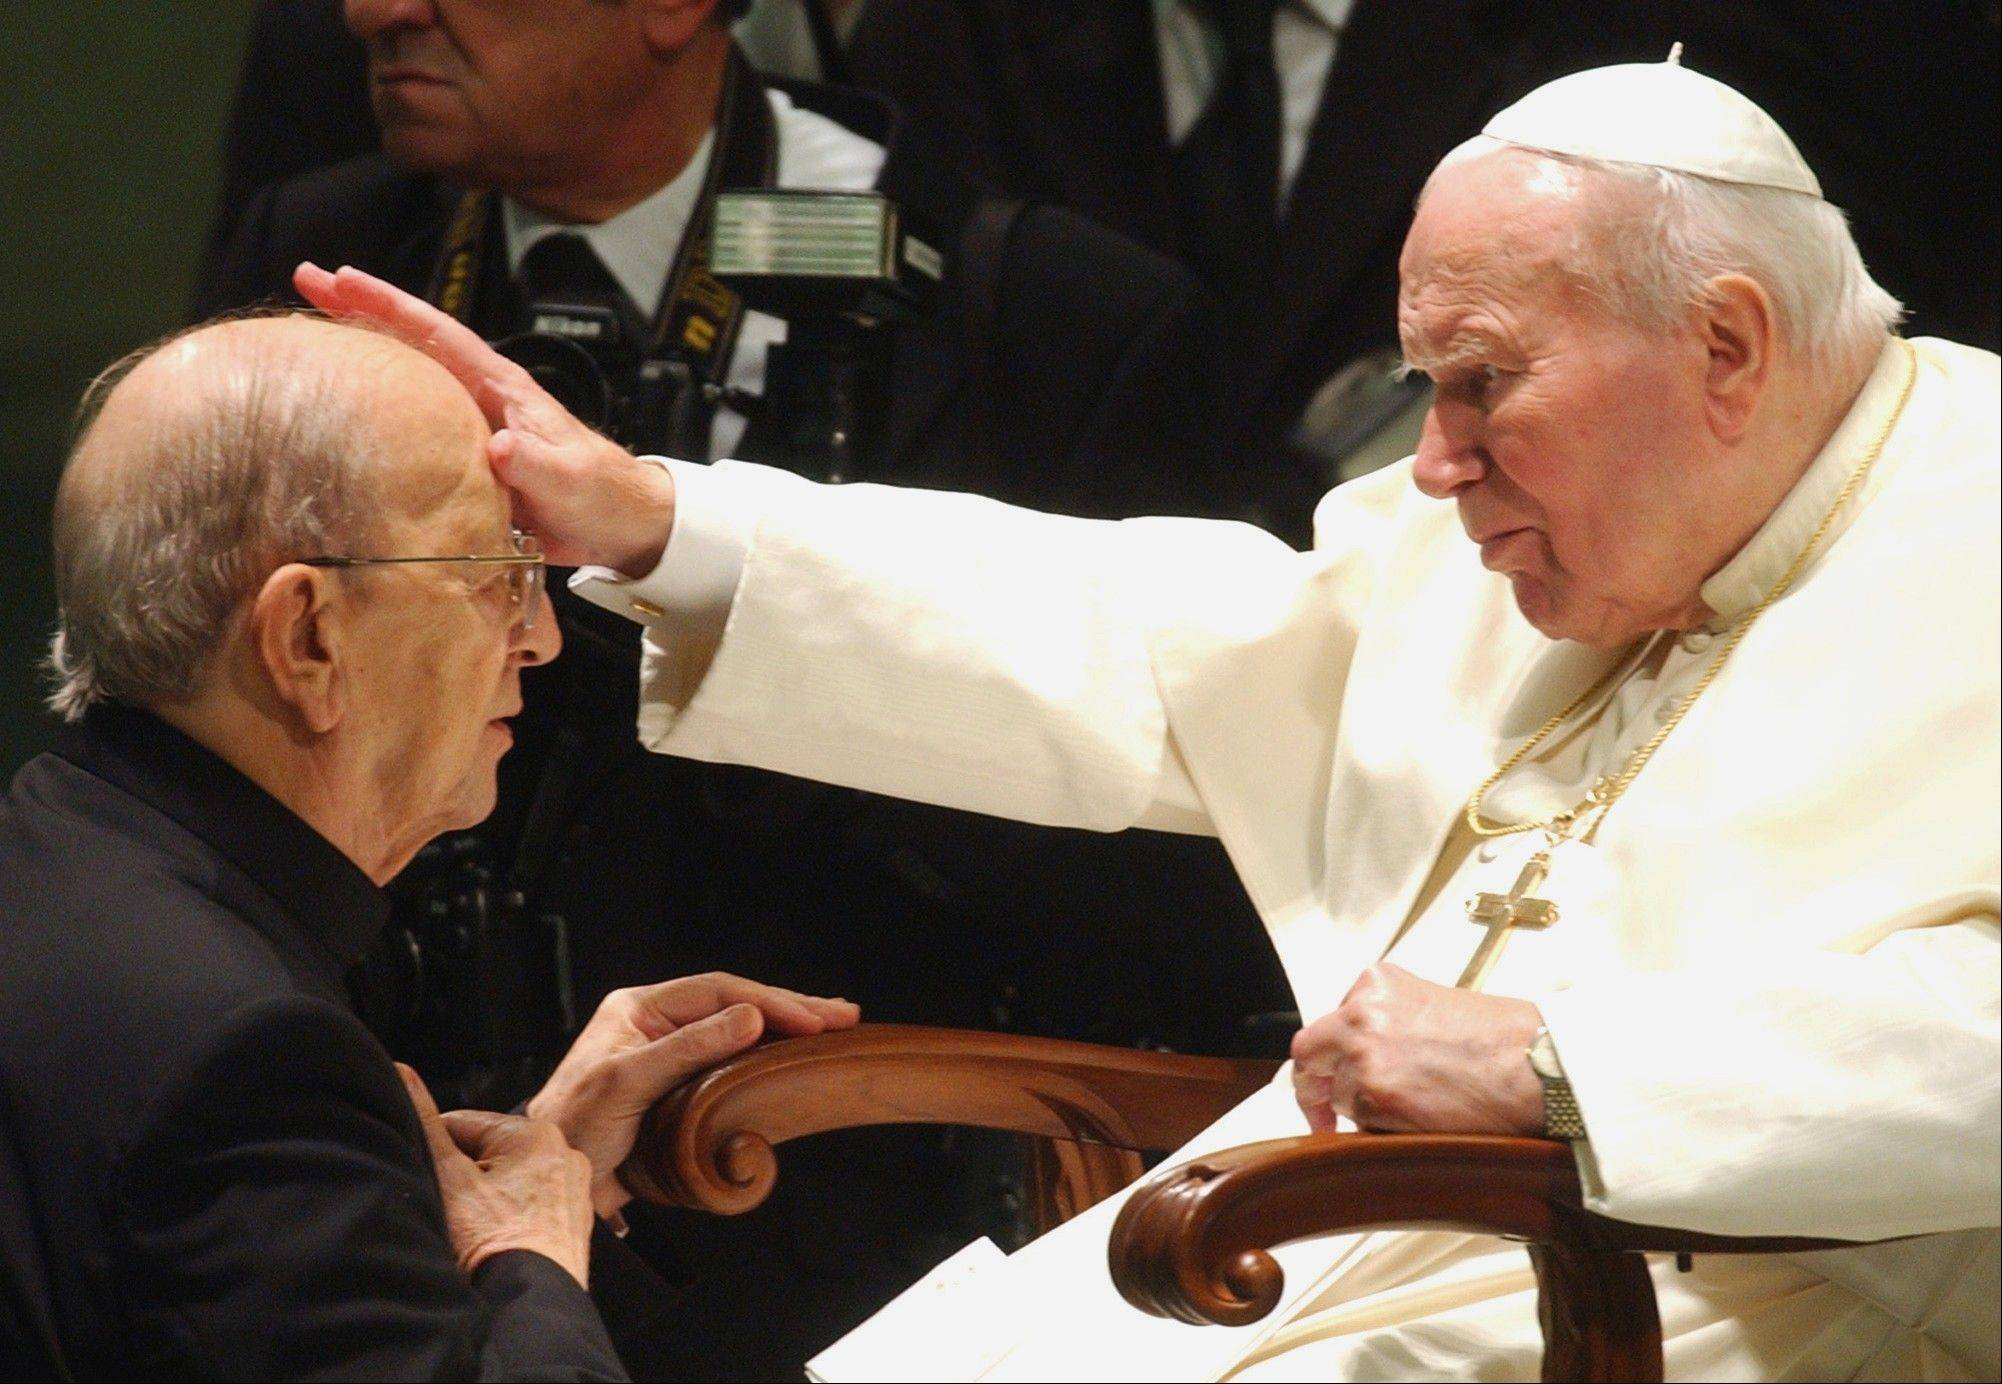 Pope John Paul II gives his blessing to father Marcial Maciel, founder of the Legion of Christ, during a special audience at the Vatican.